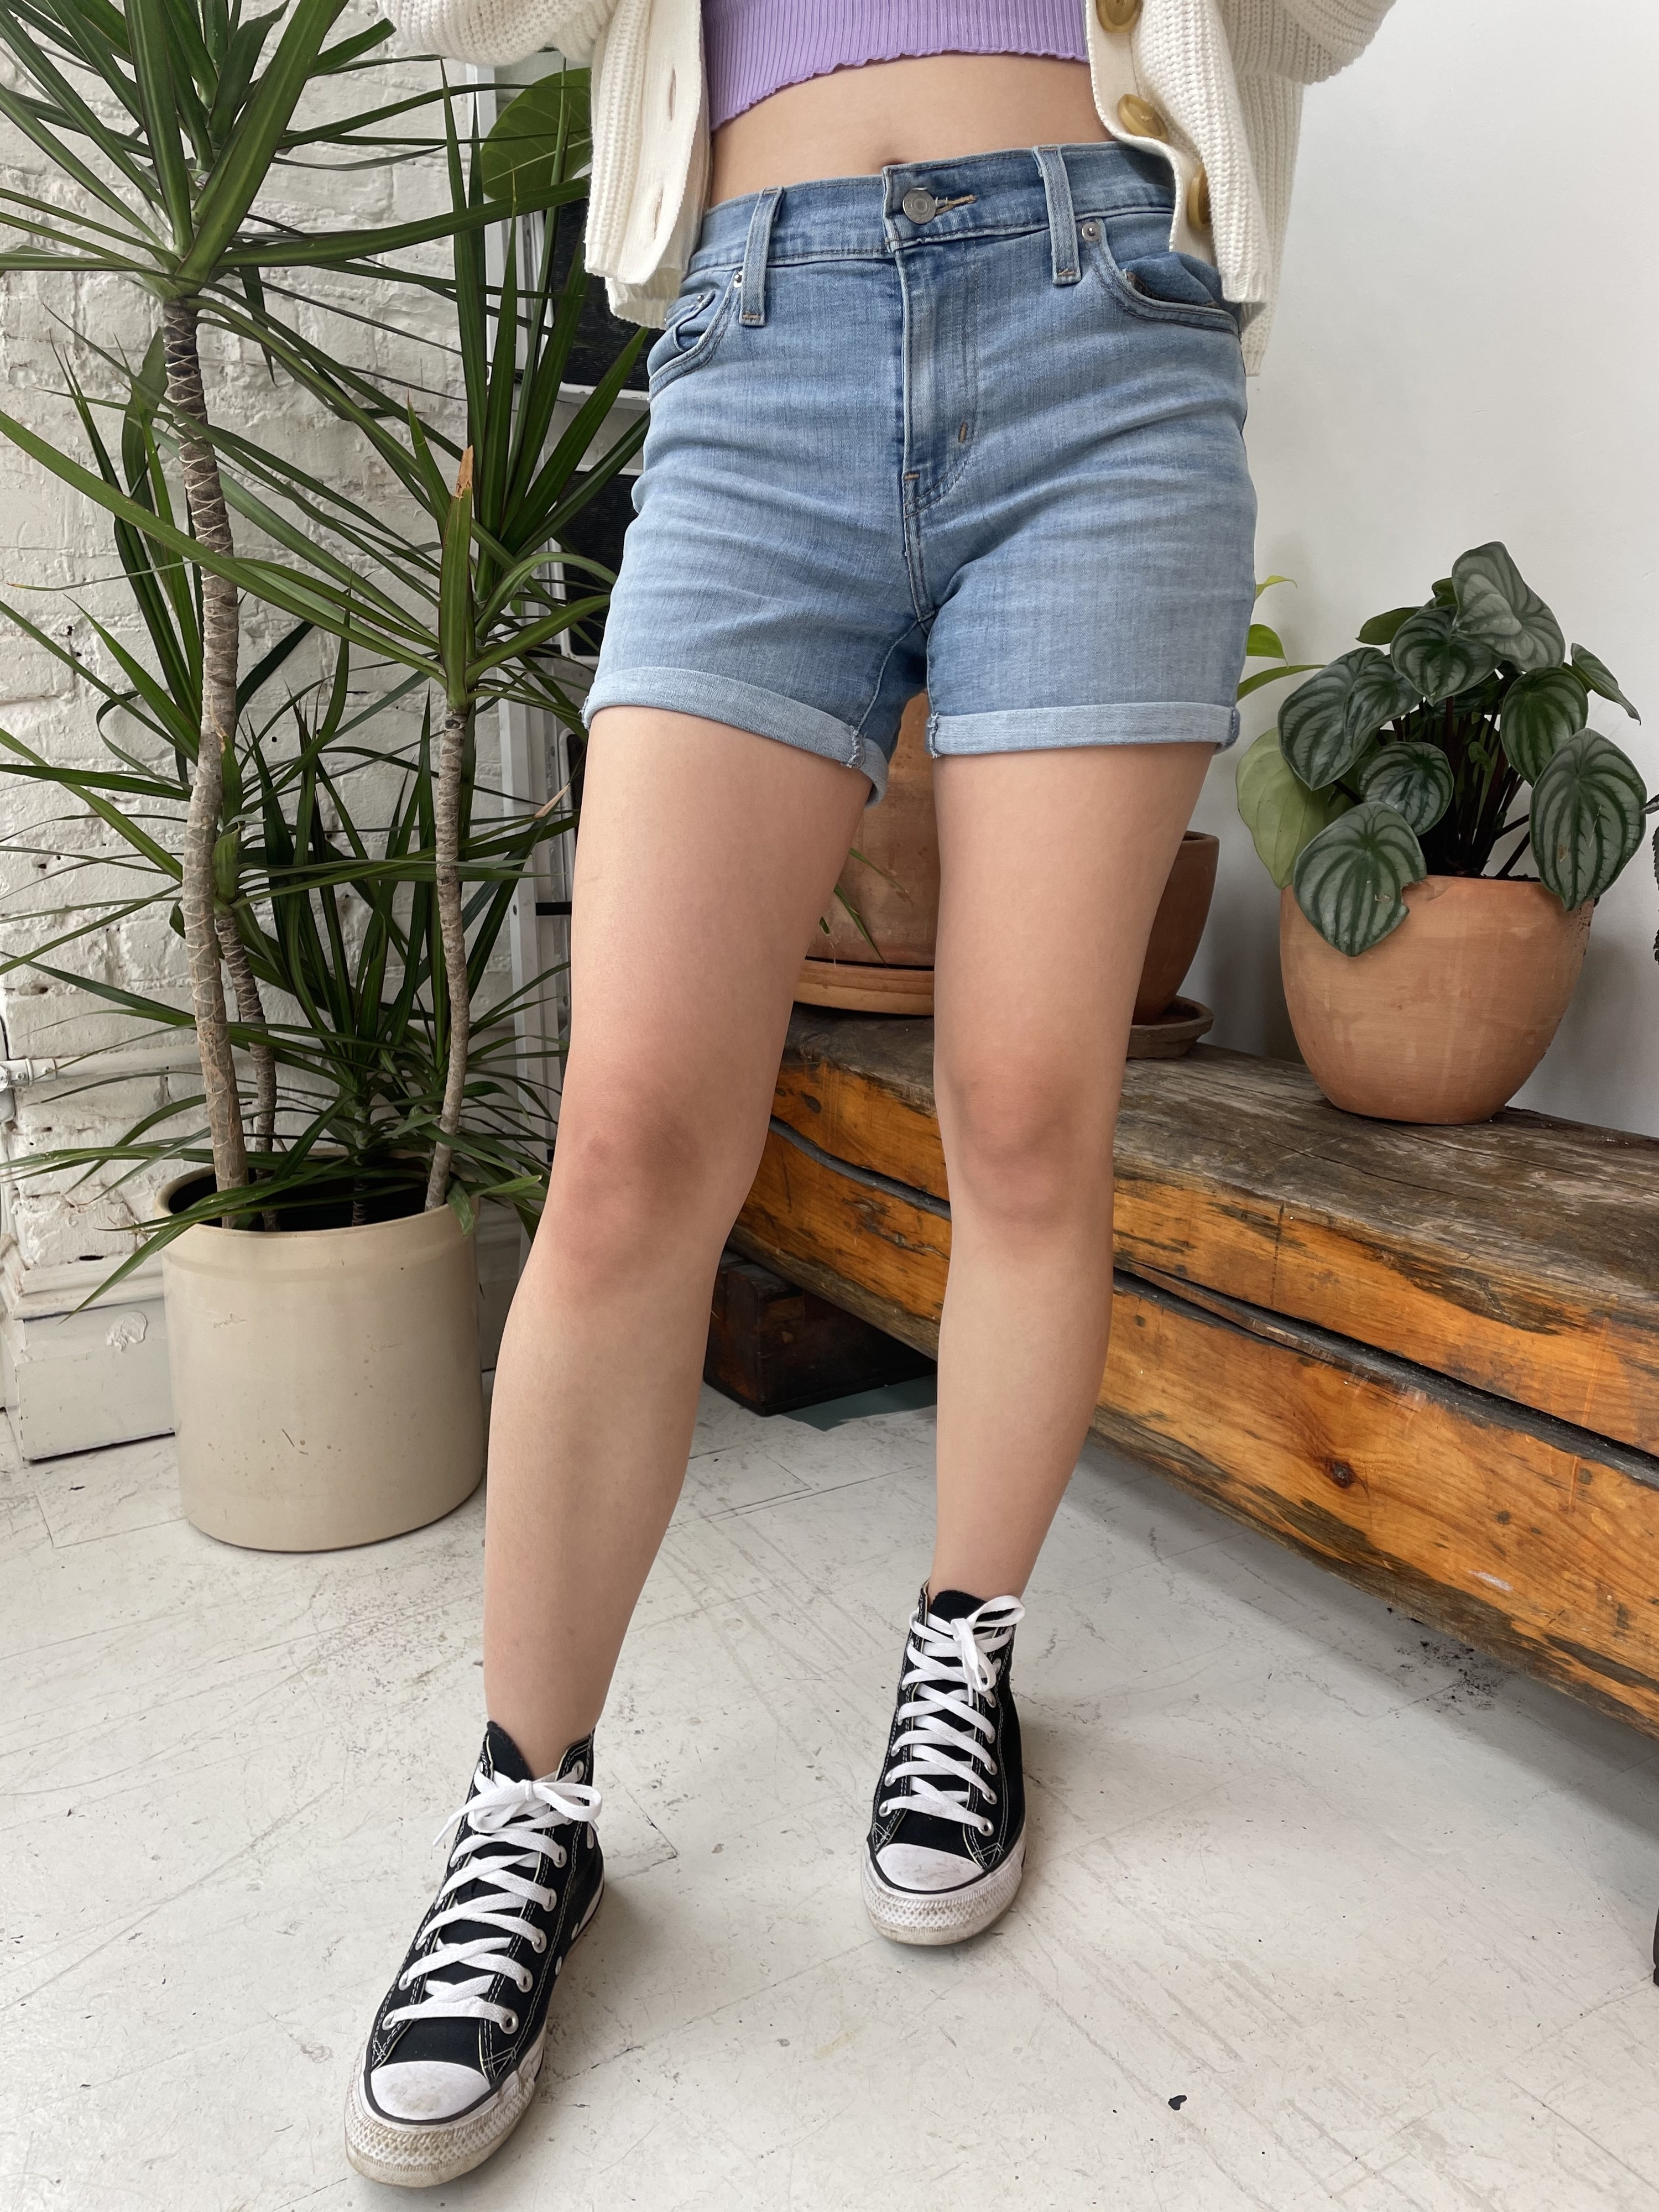 writer wearing the shorts with hi-top black converse, plants in the background